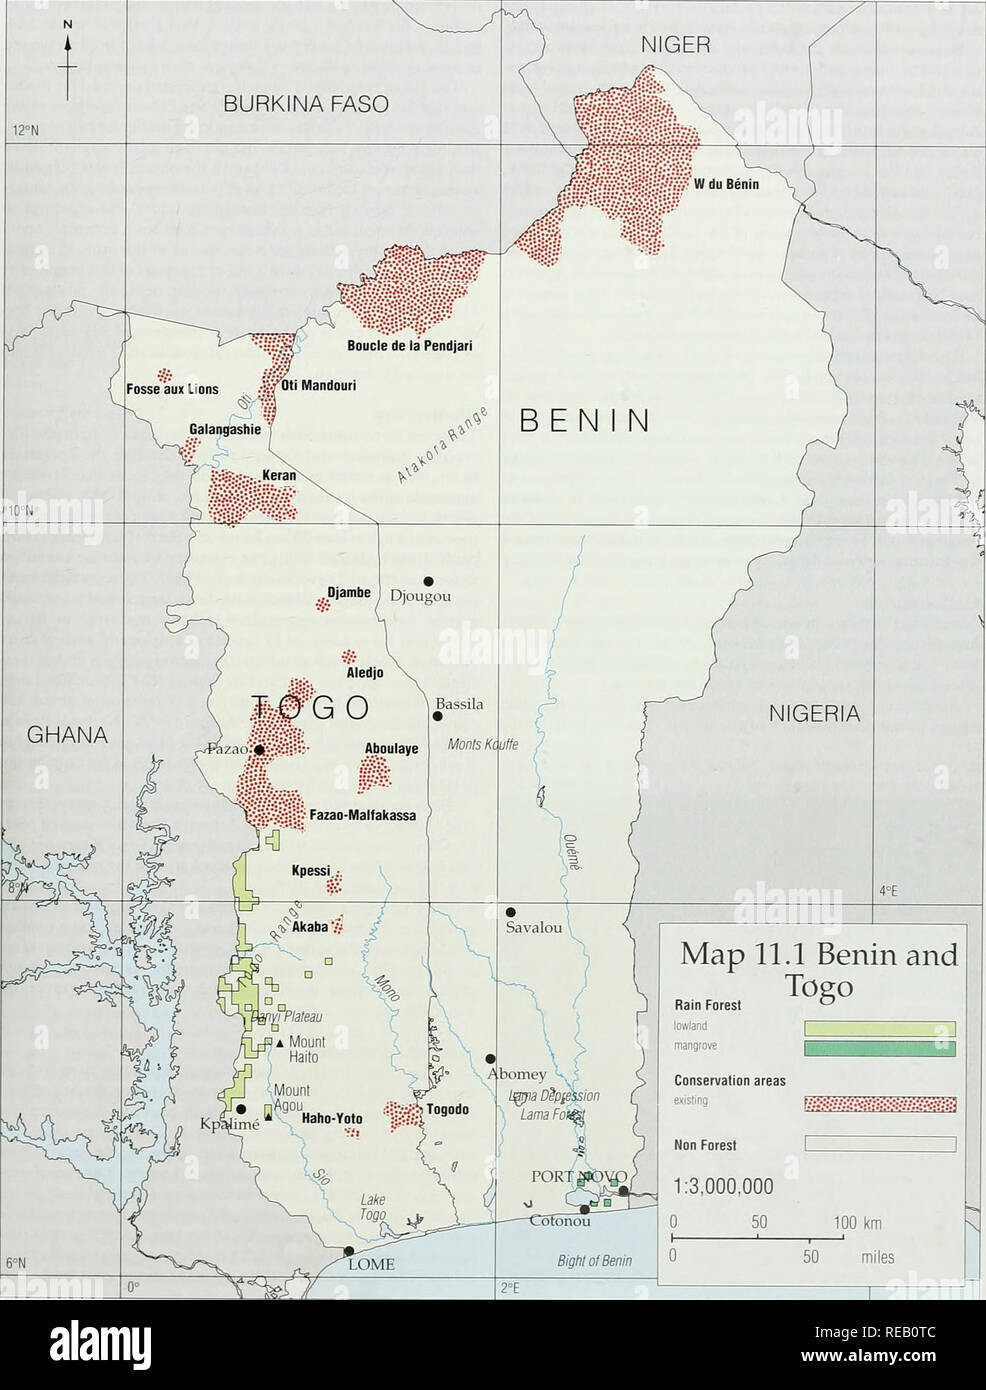 The Conservation Atlas of Tropical Forests: Africa. Benin and Togo